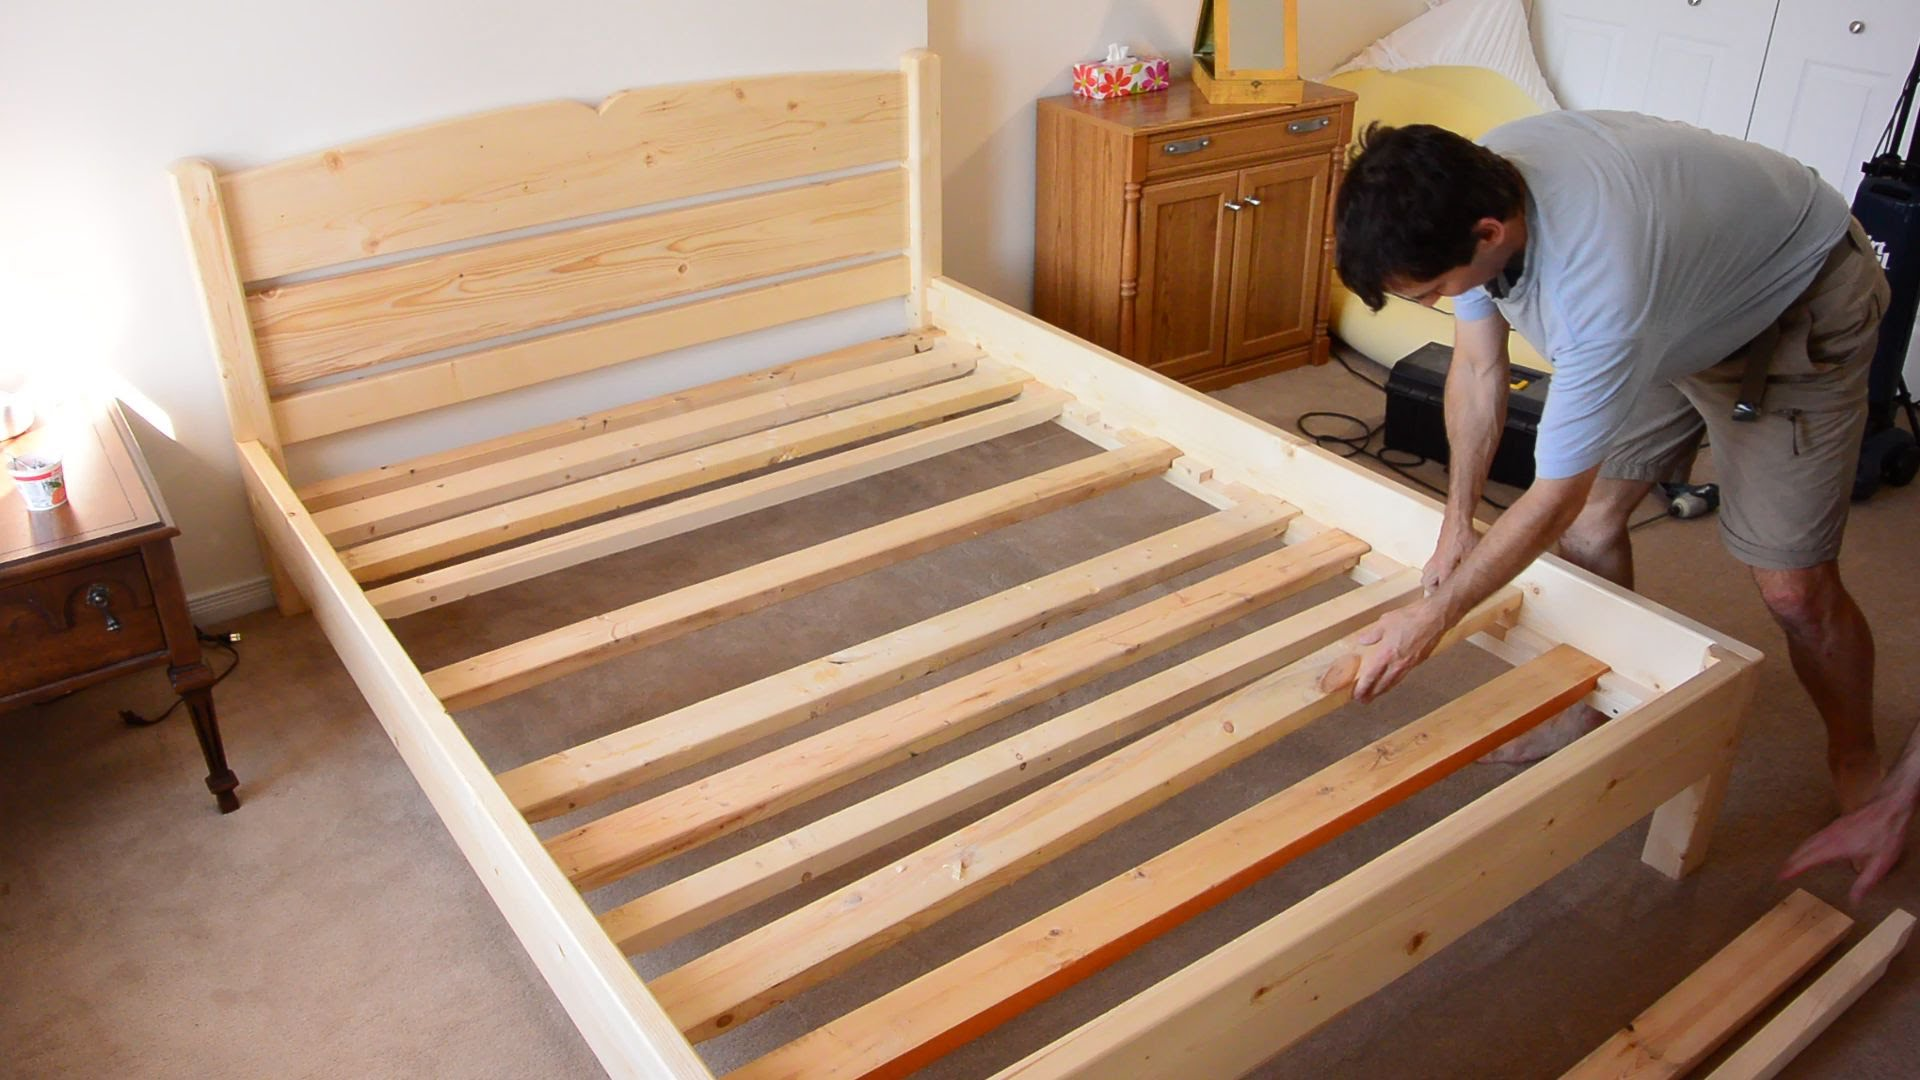 Building A Queen Size Bed From 2 215 4 Lumber Diy Fyi